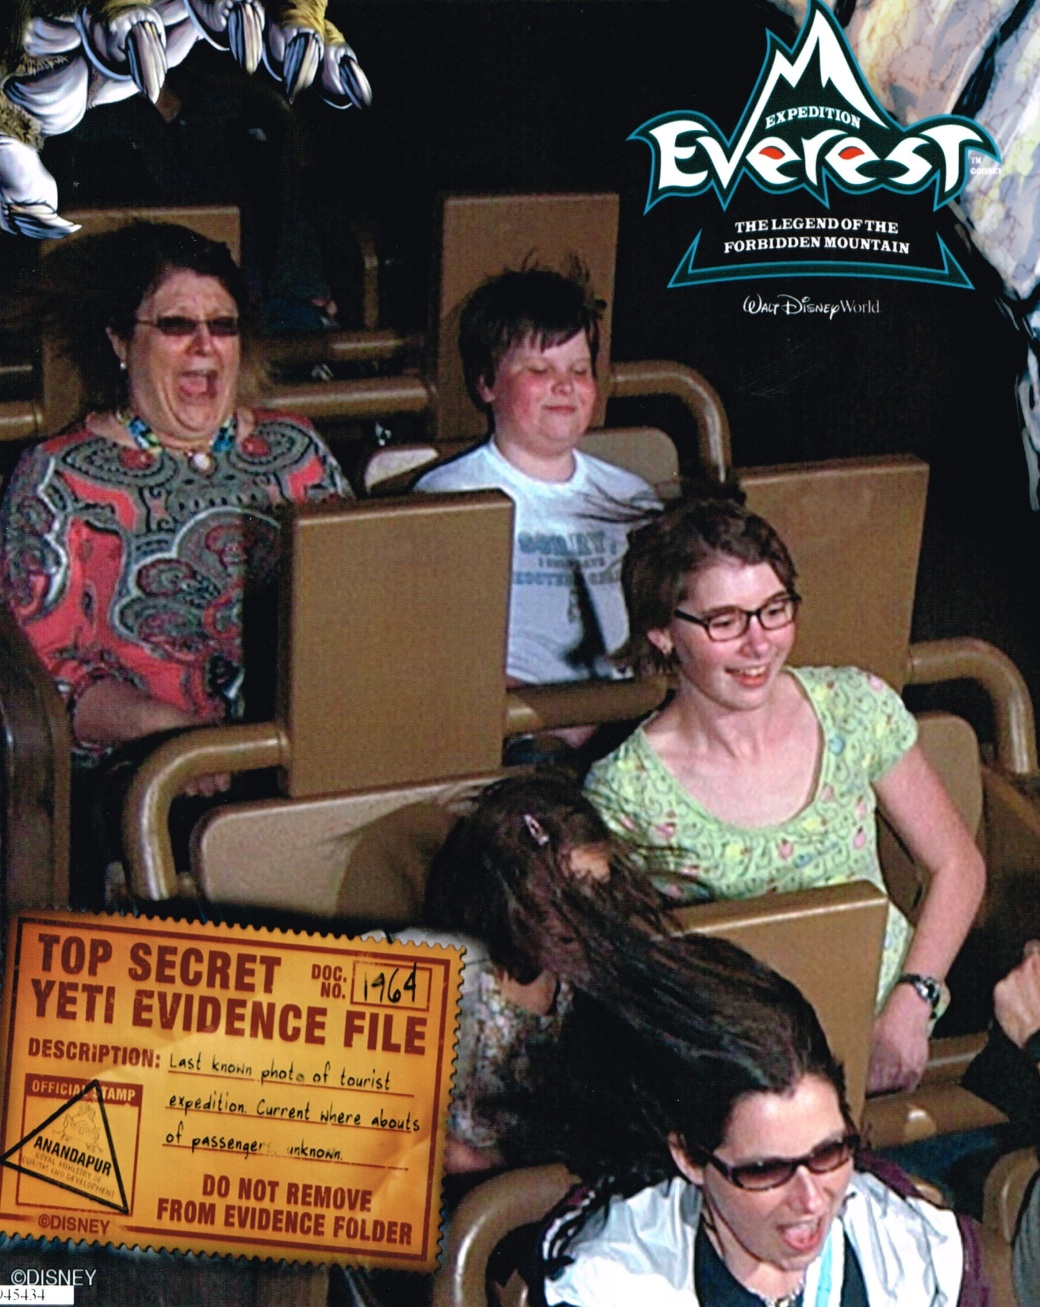 Scary Friggin Everest!